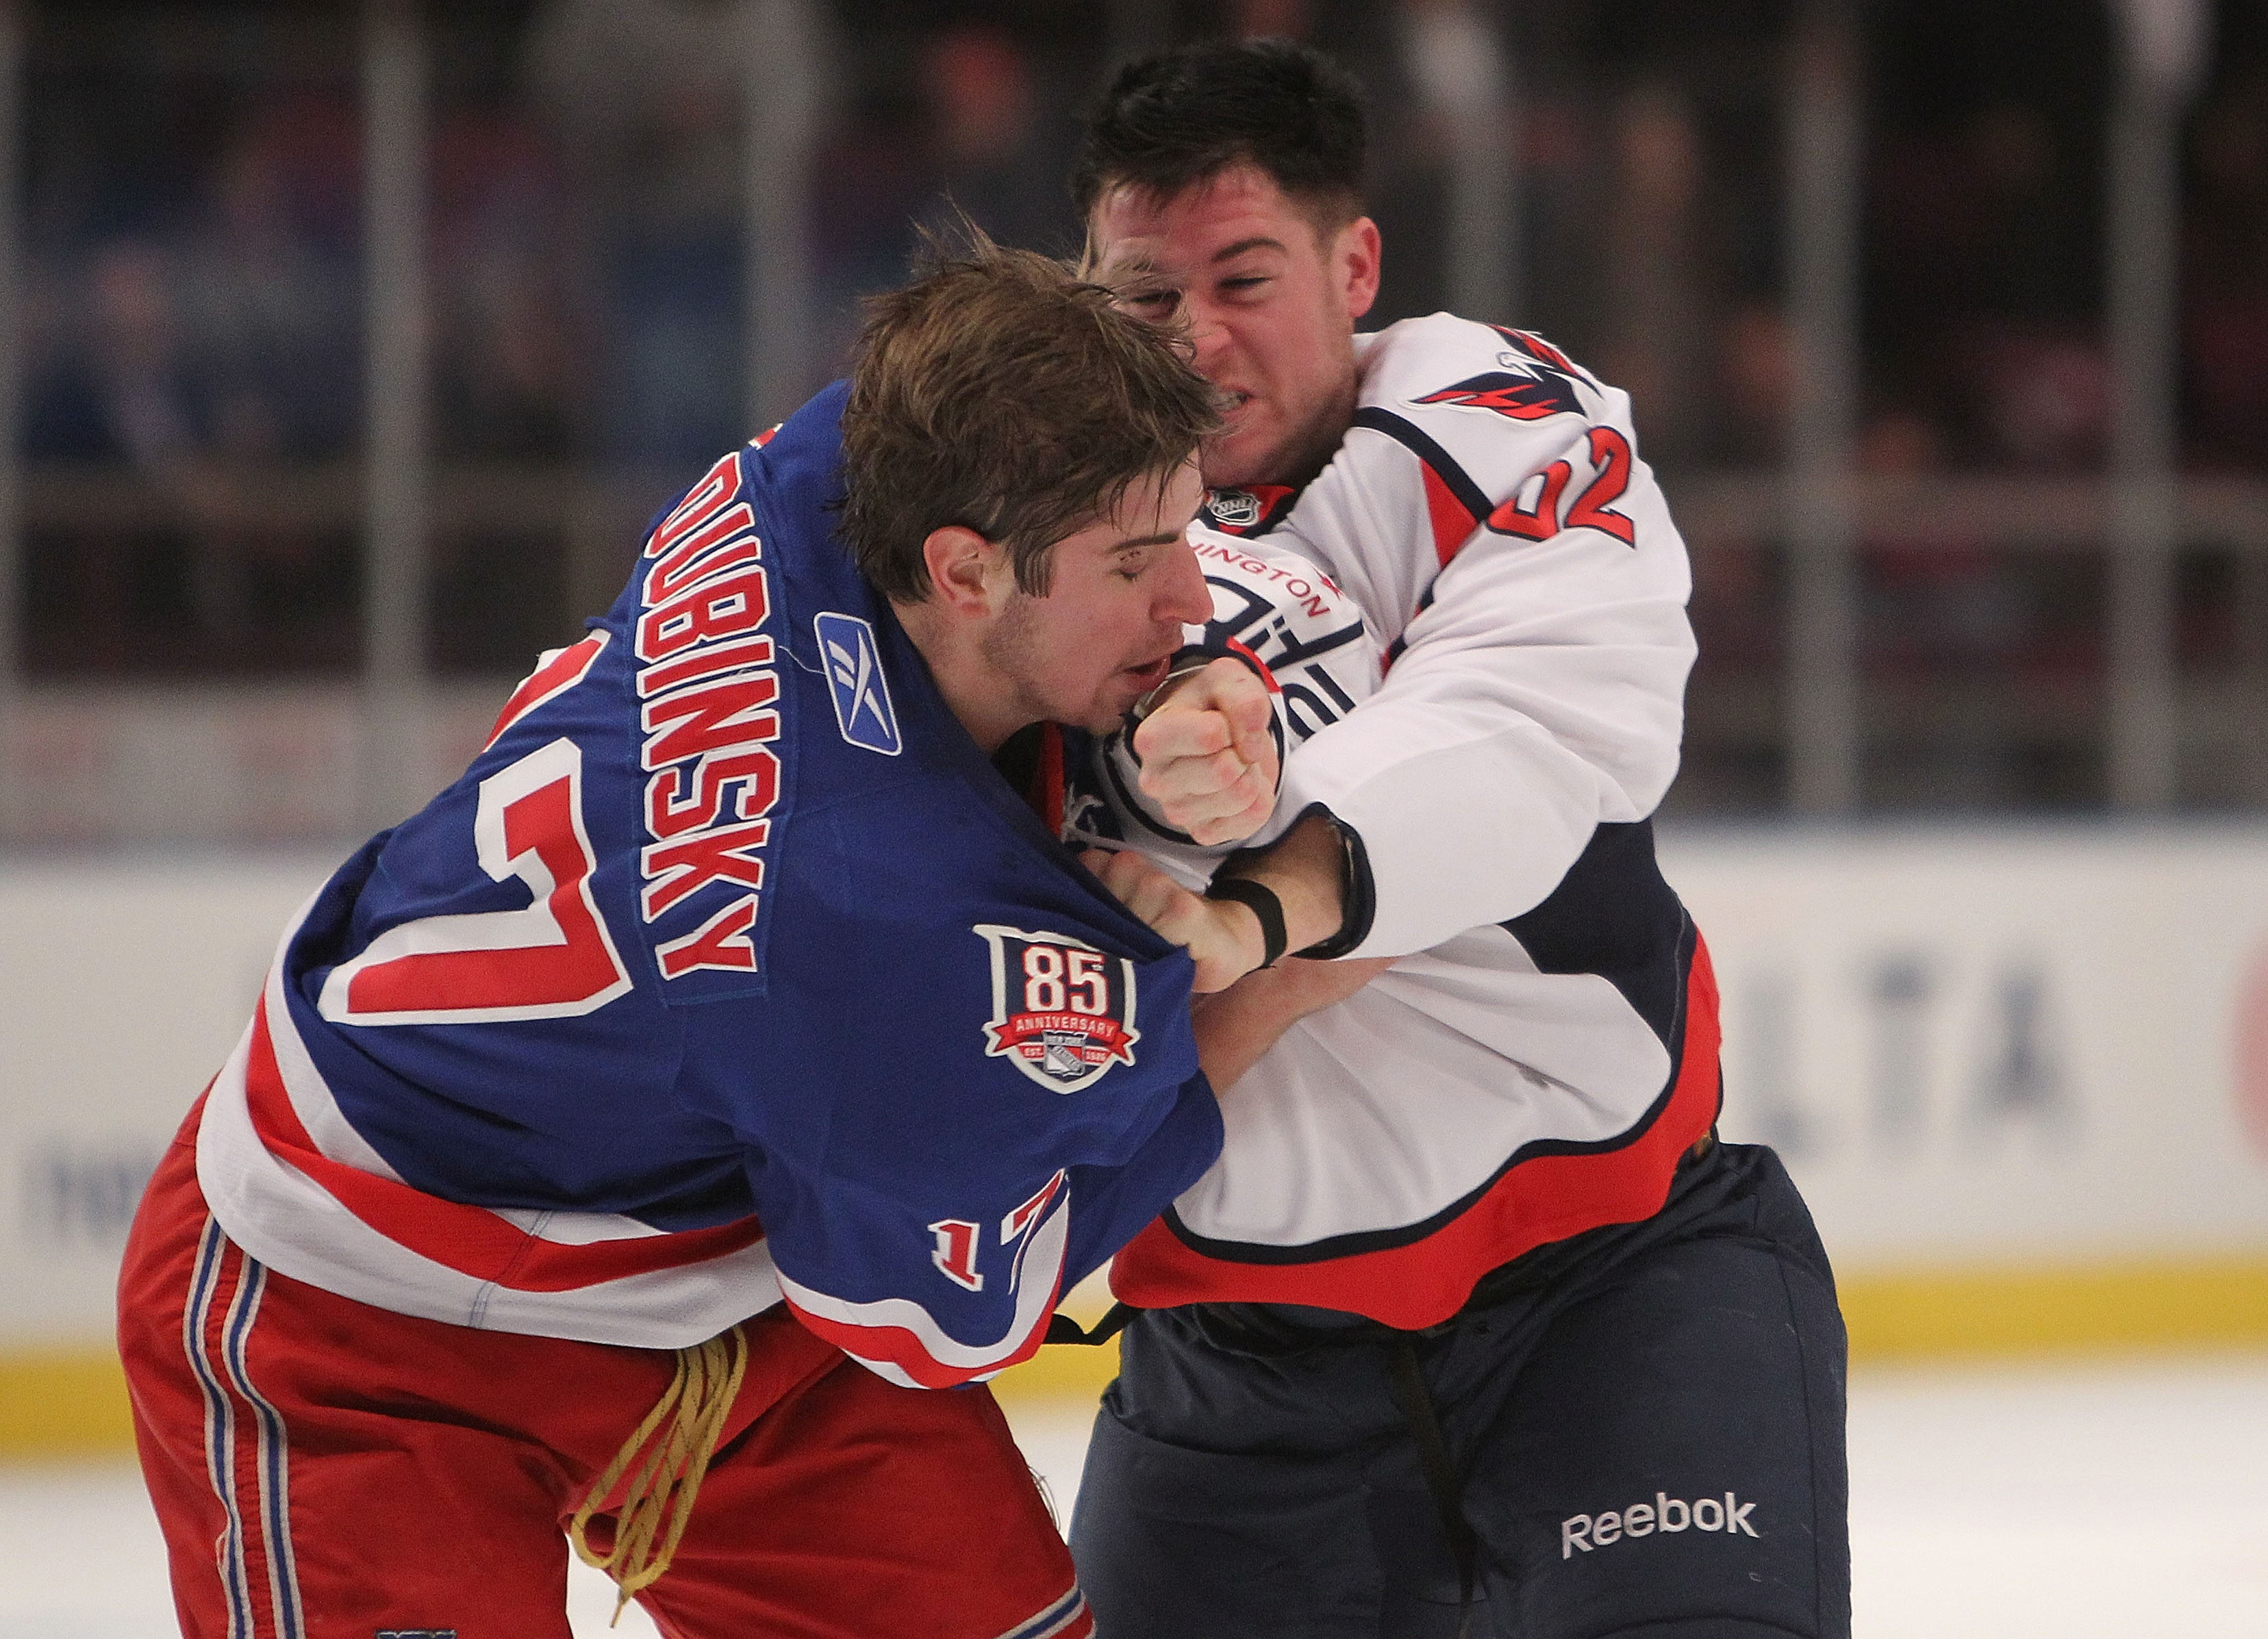 NEW YORK - NOVEMBER 09: Brandon Dubinsky #17 of the New York Rangers fights with Mike Green #52 of the Washington Capitals at Madison Square Garden on November 9, 2010 in New York City.  (Photo by Nick Laham/Getty Images)